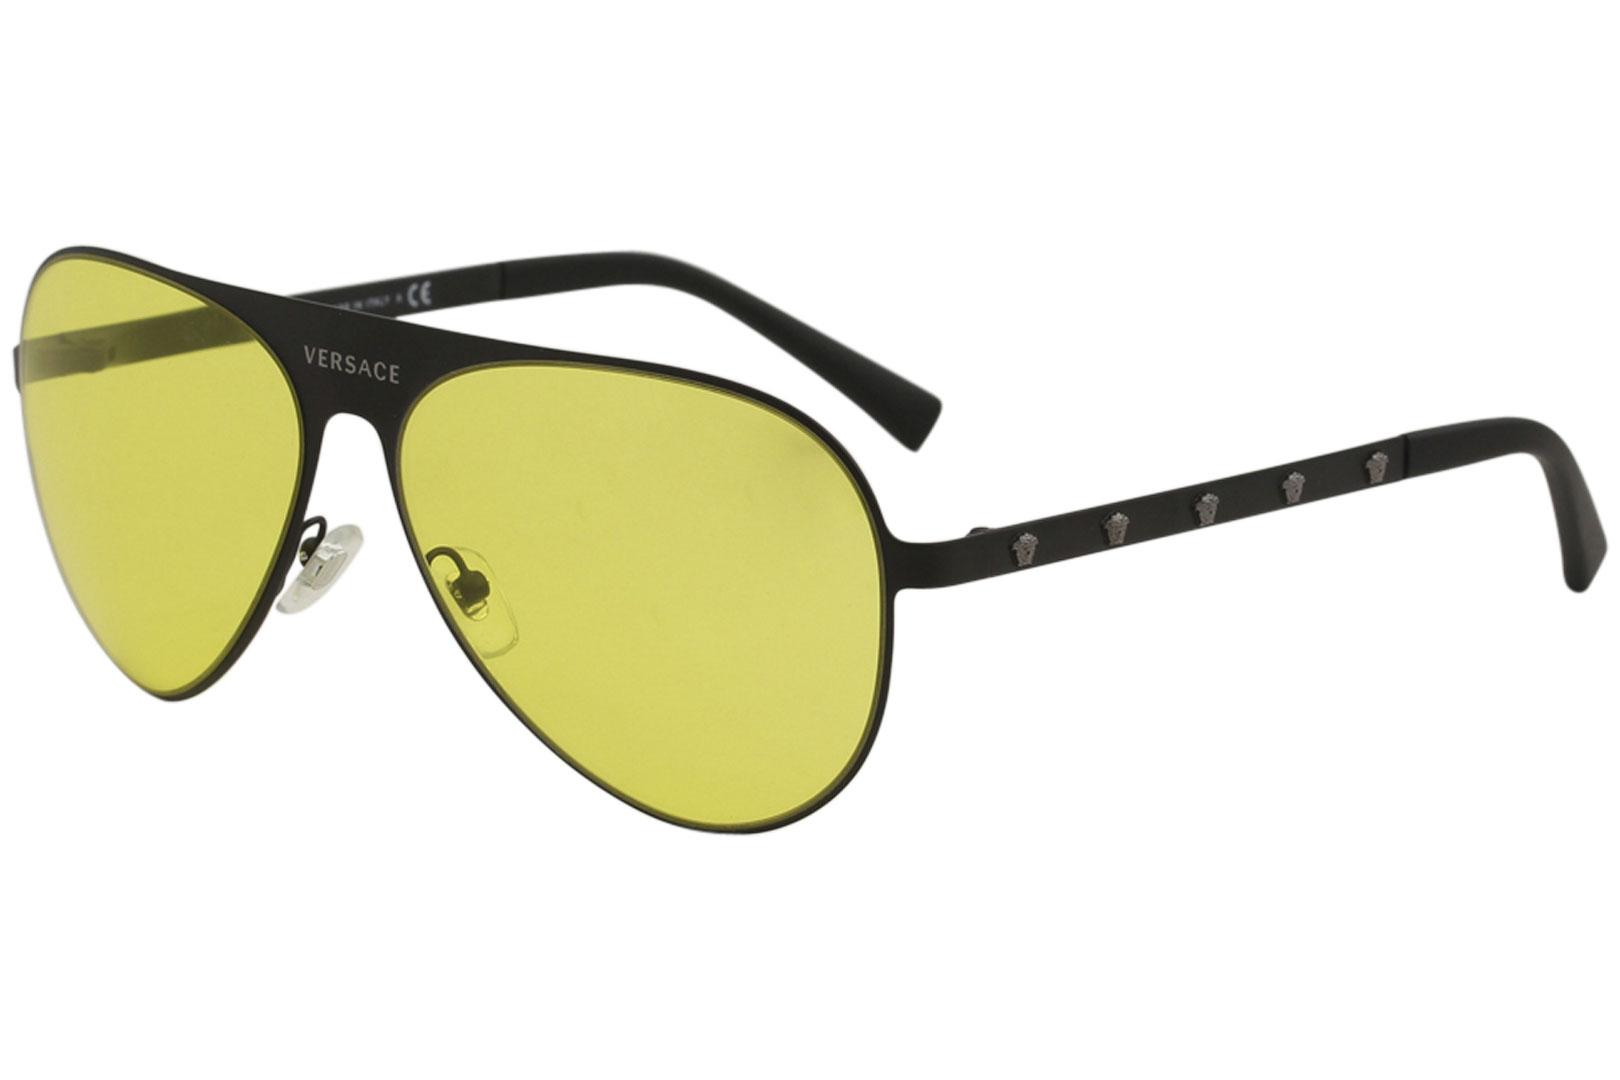 9cbd432aaec6 Versace Men s VE2189 VE 2189 Fashion Pilot Sunglasses